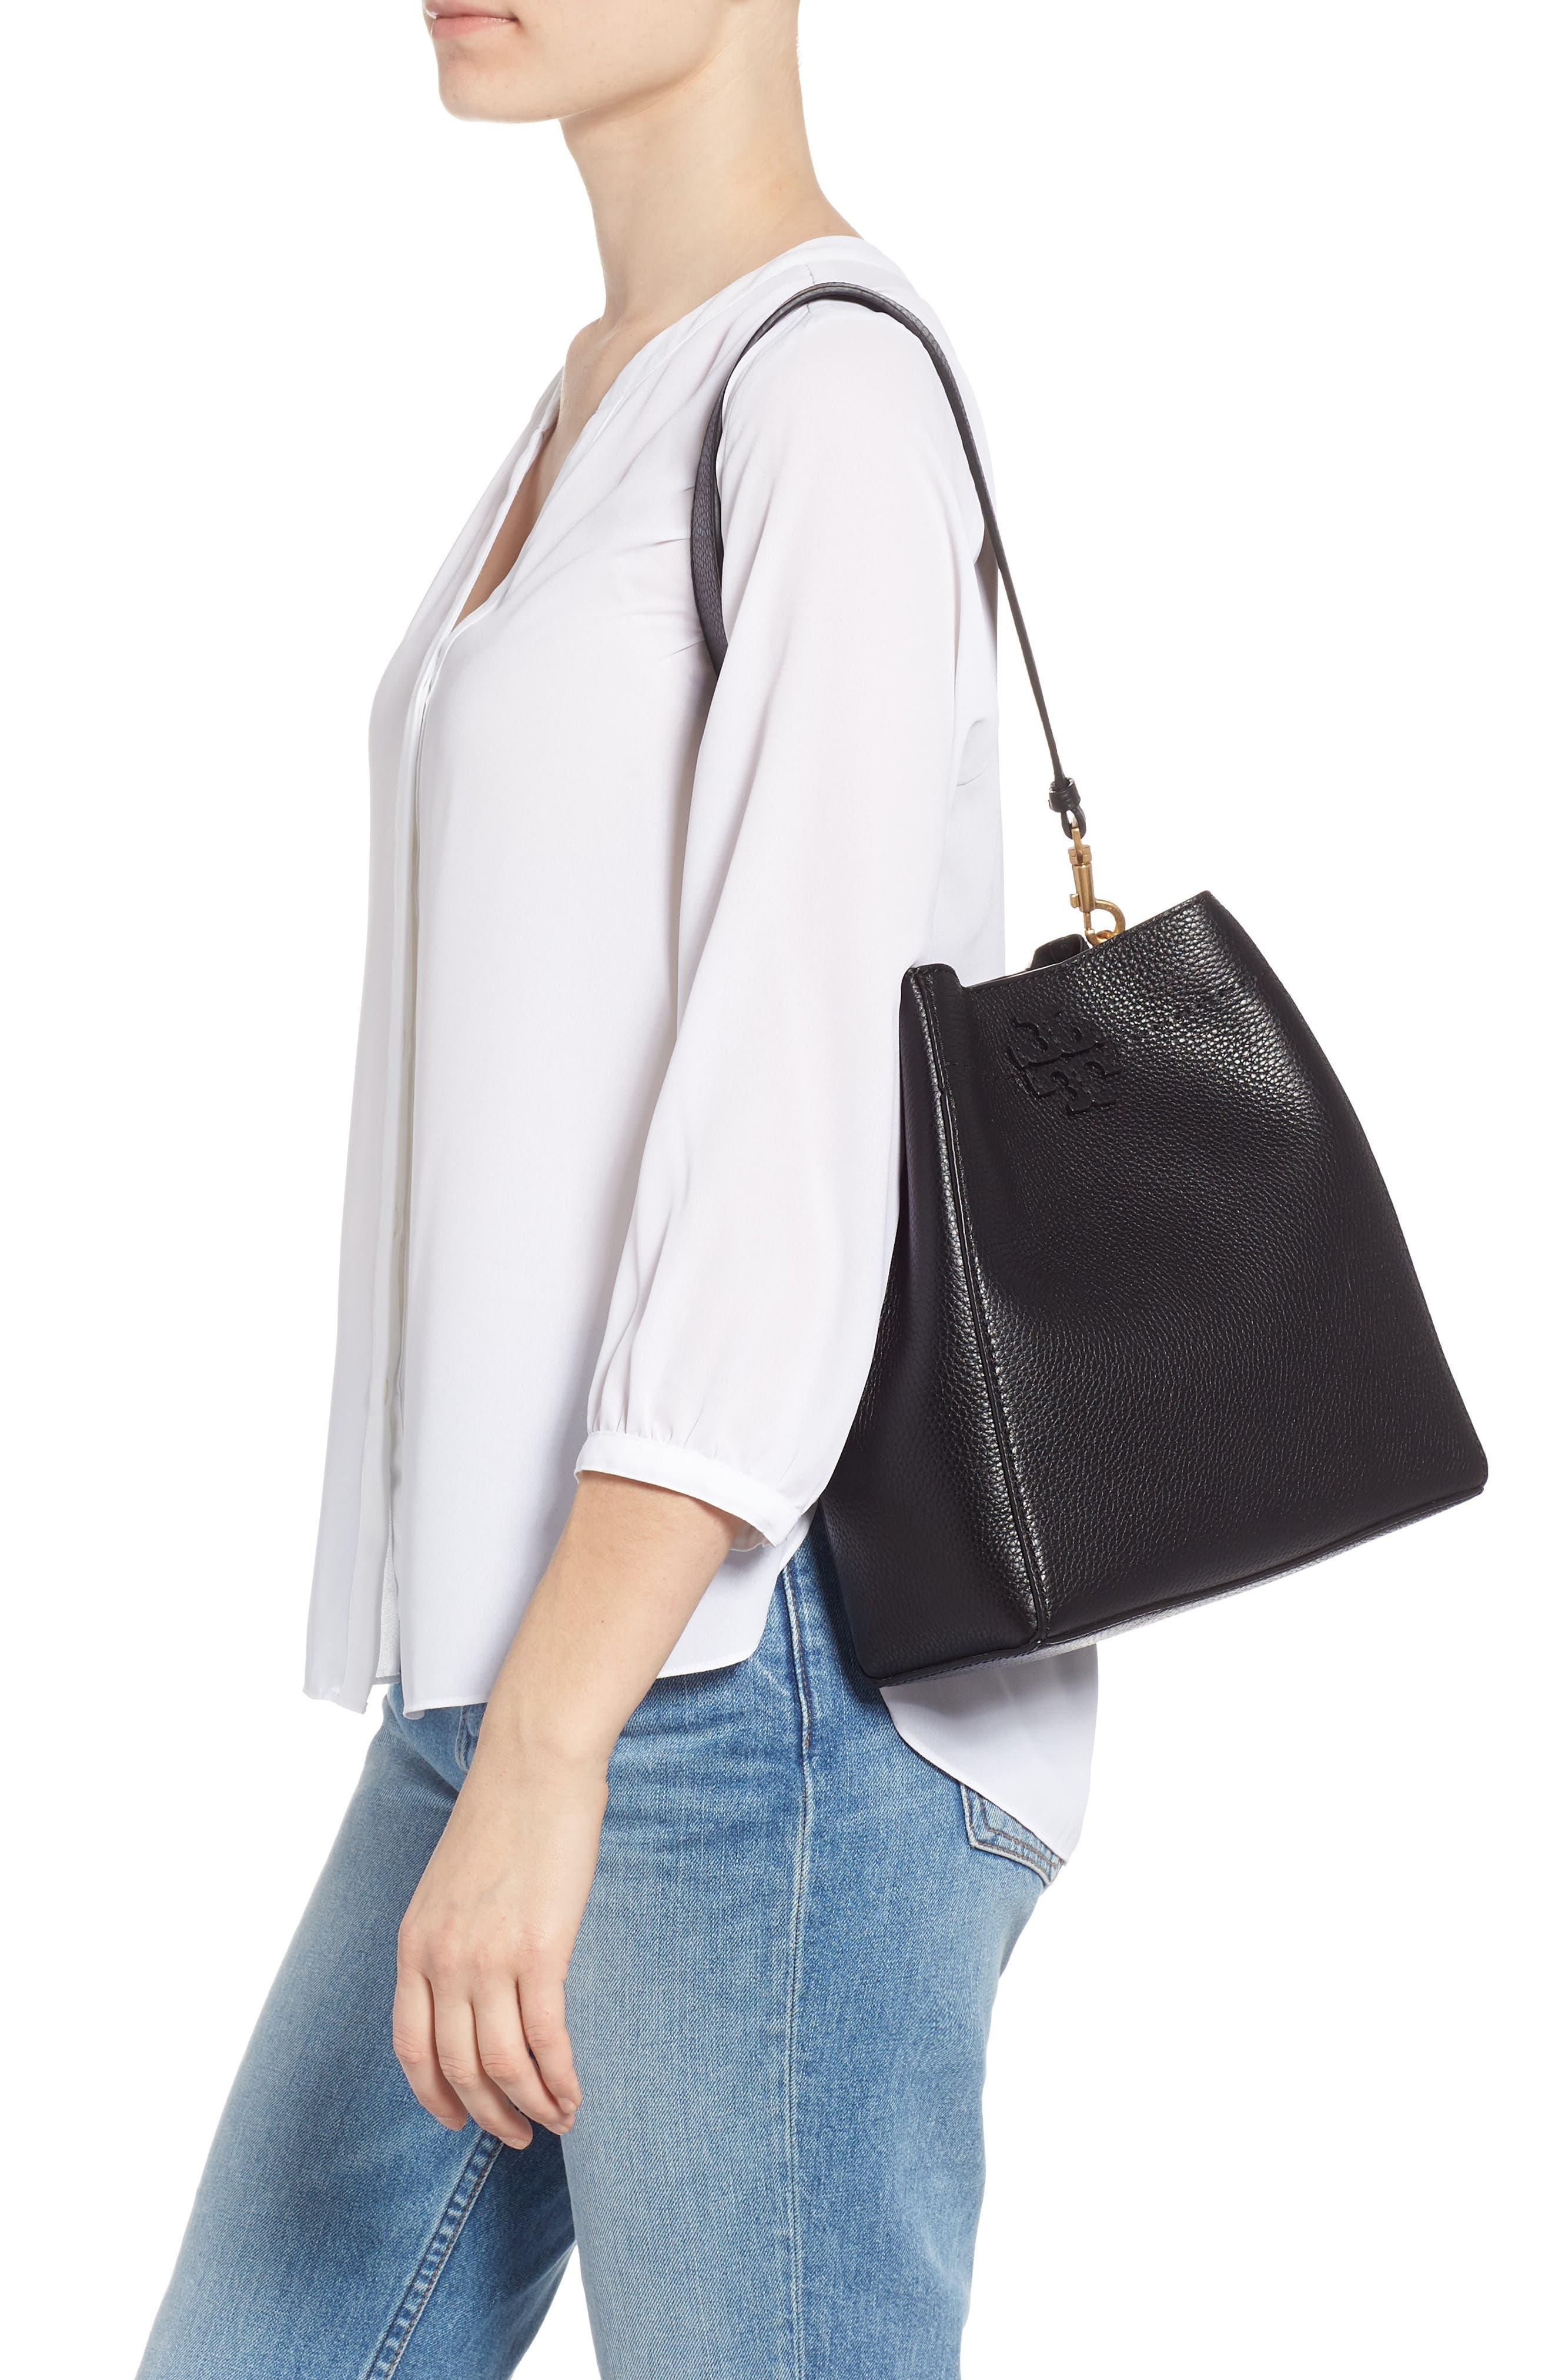 TORY BURCH, McGraw Leather Hobo, Alternate thumbnail 4, color, BLACK